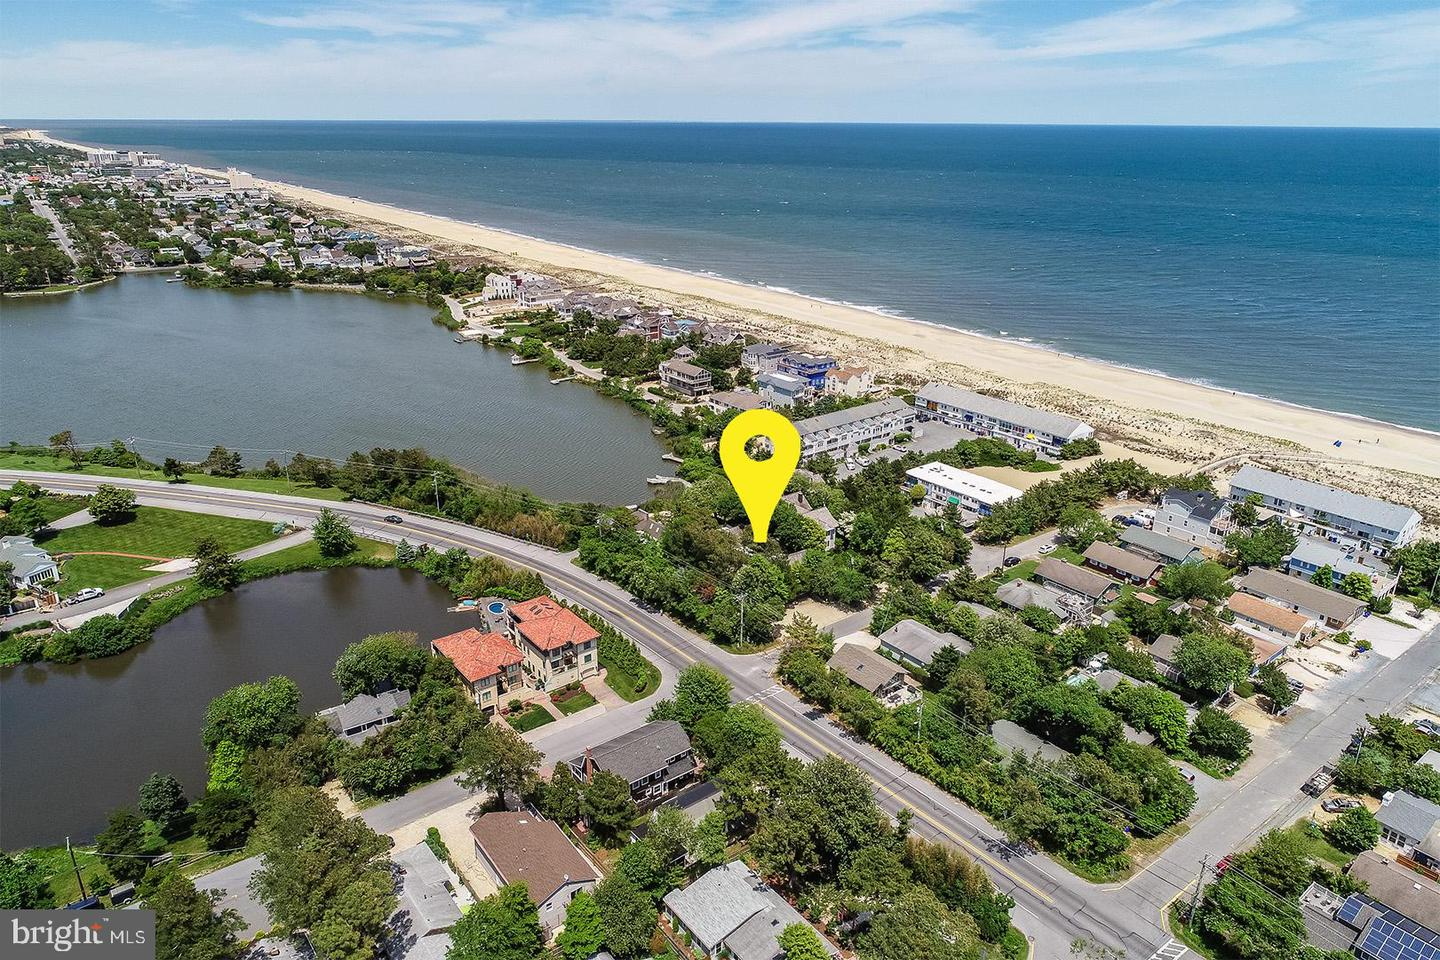 DESU157354-304047002818-2020-08-17-12-39-39 Sold Listings - Rehoboth Beach Real Estate - Bryce Lingo and Shaun Tull REALTORS, Rehoboth Beach, Delaware